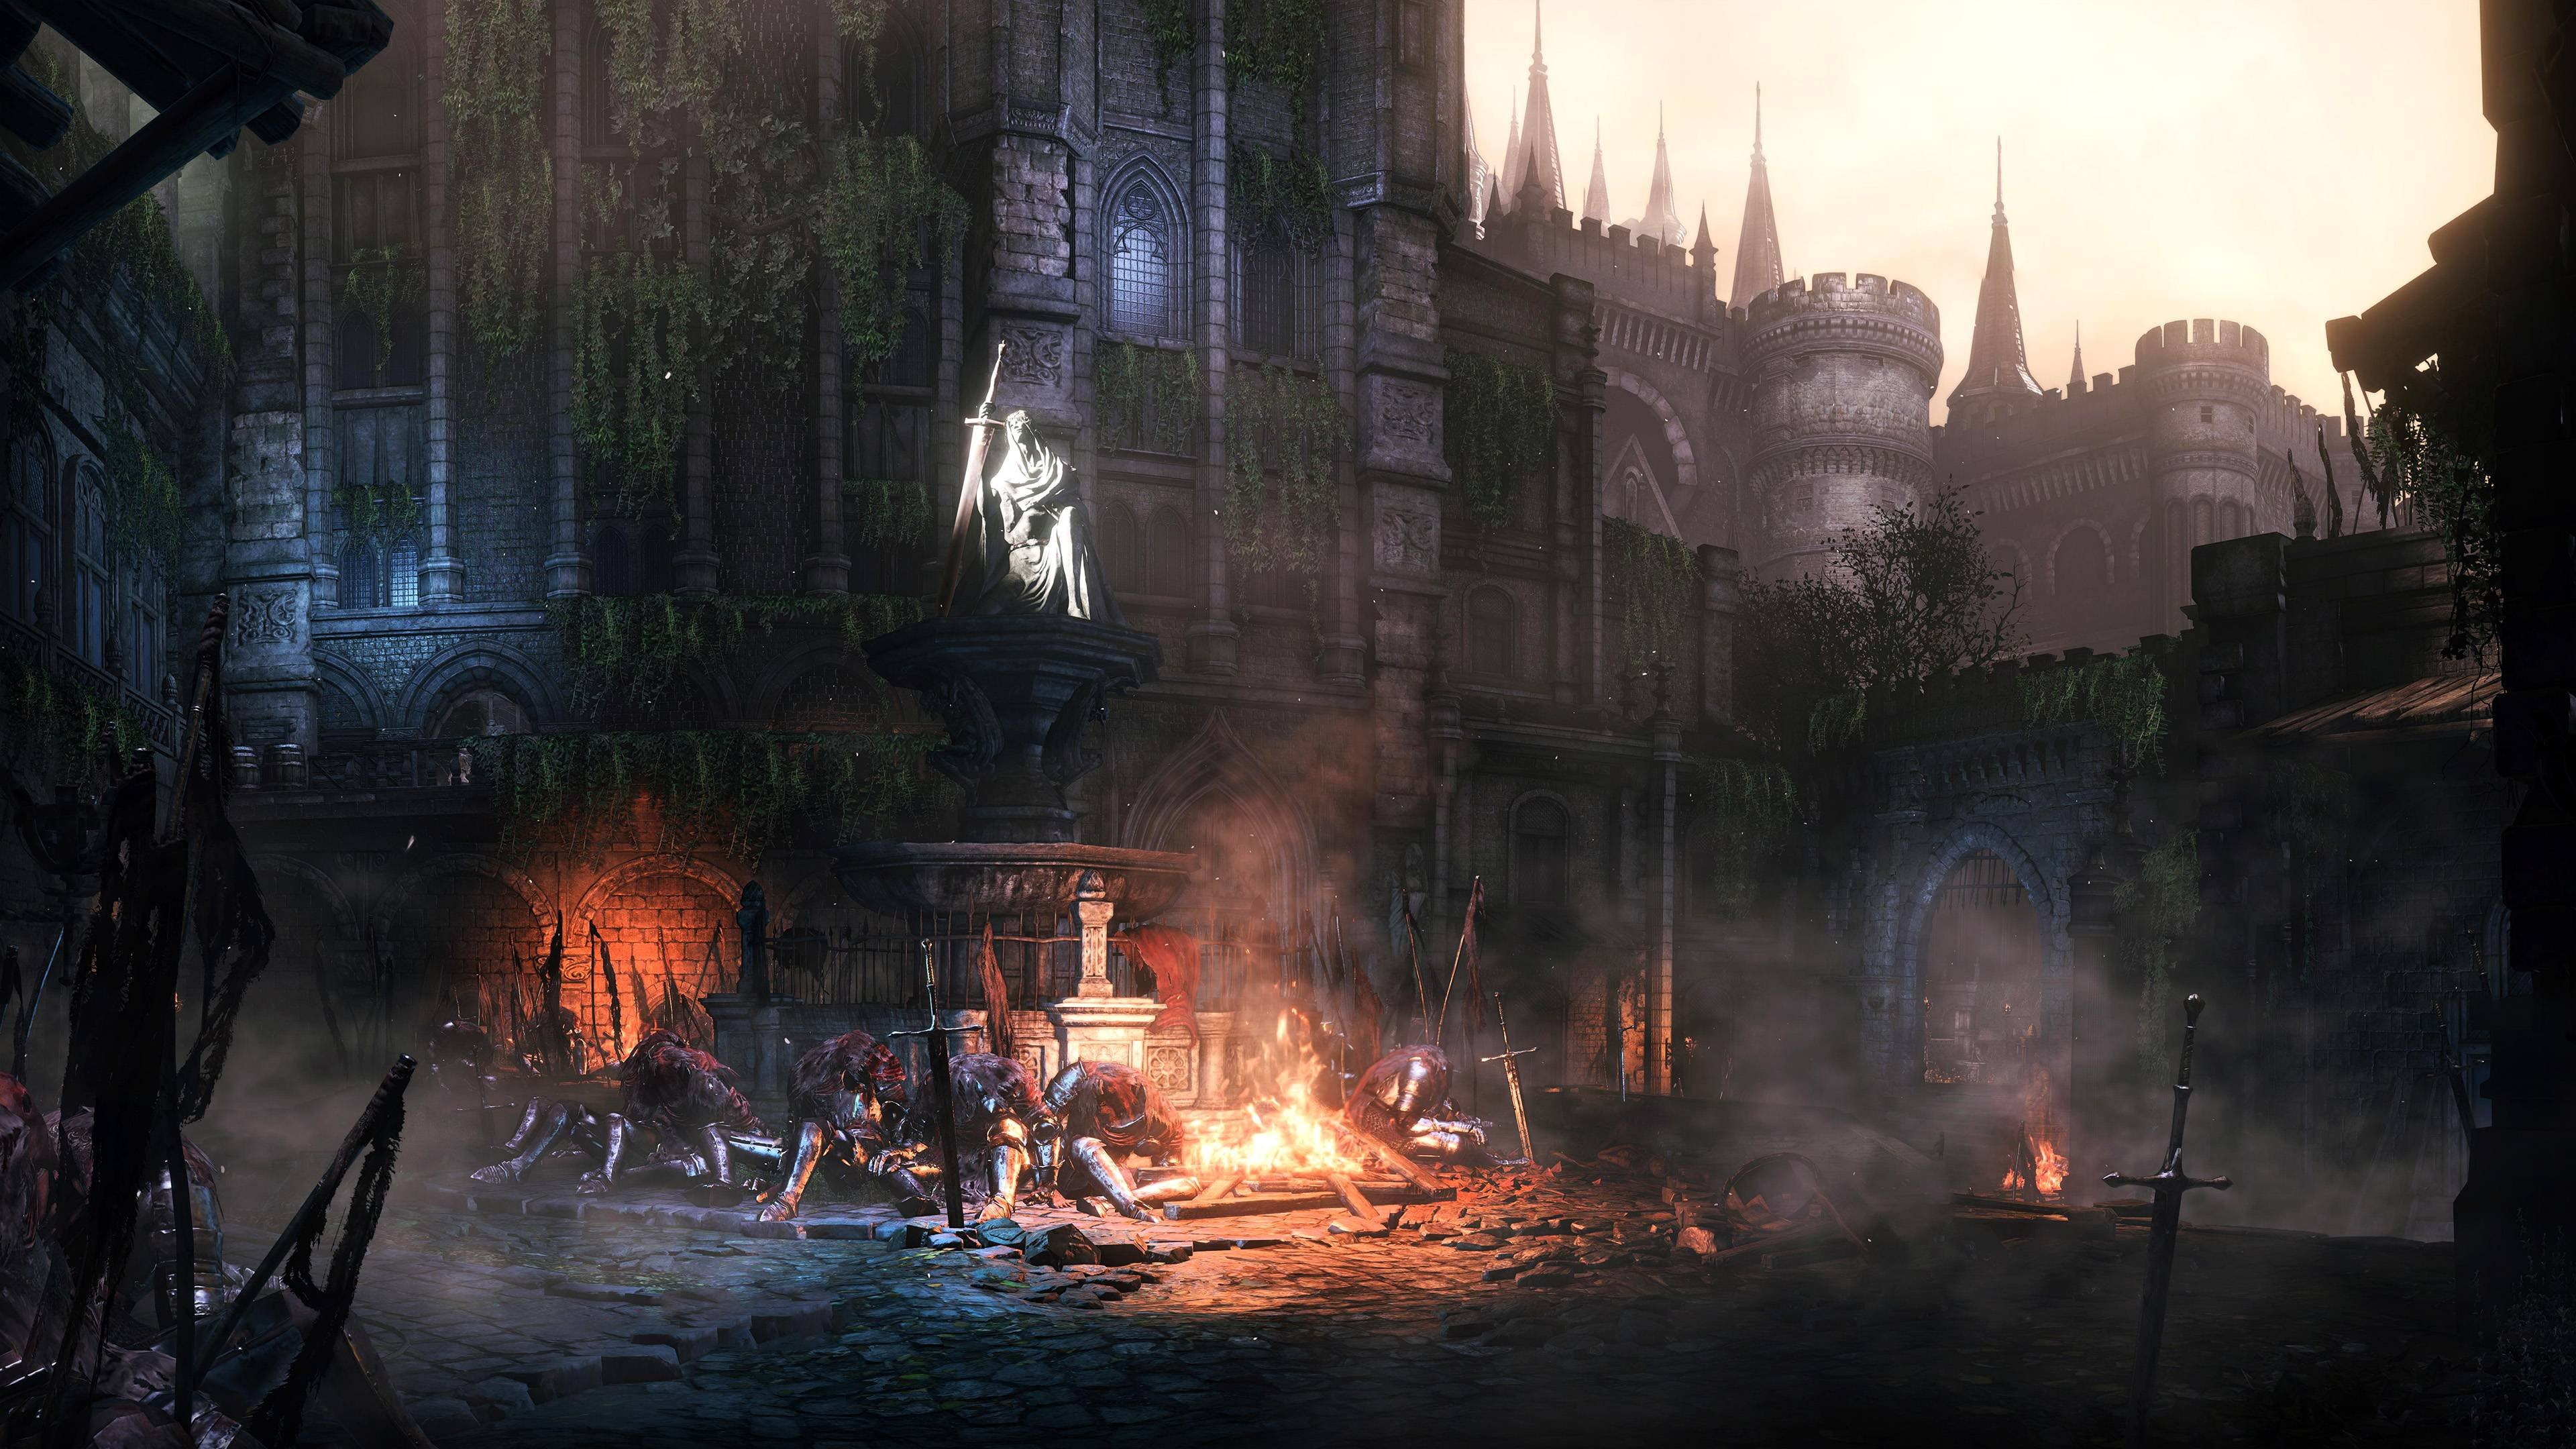 Dark Souls III - High Wall of Lothric wallpaper